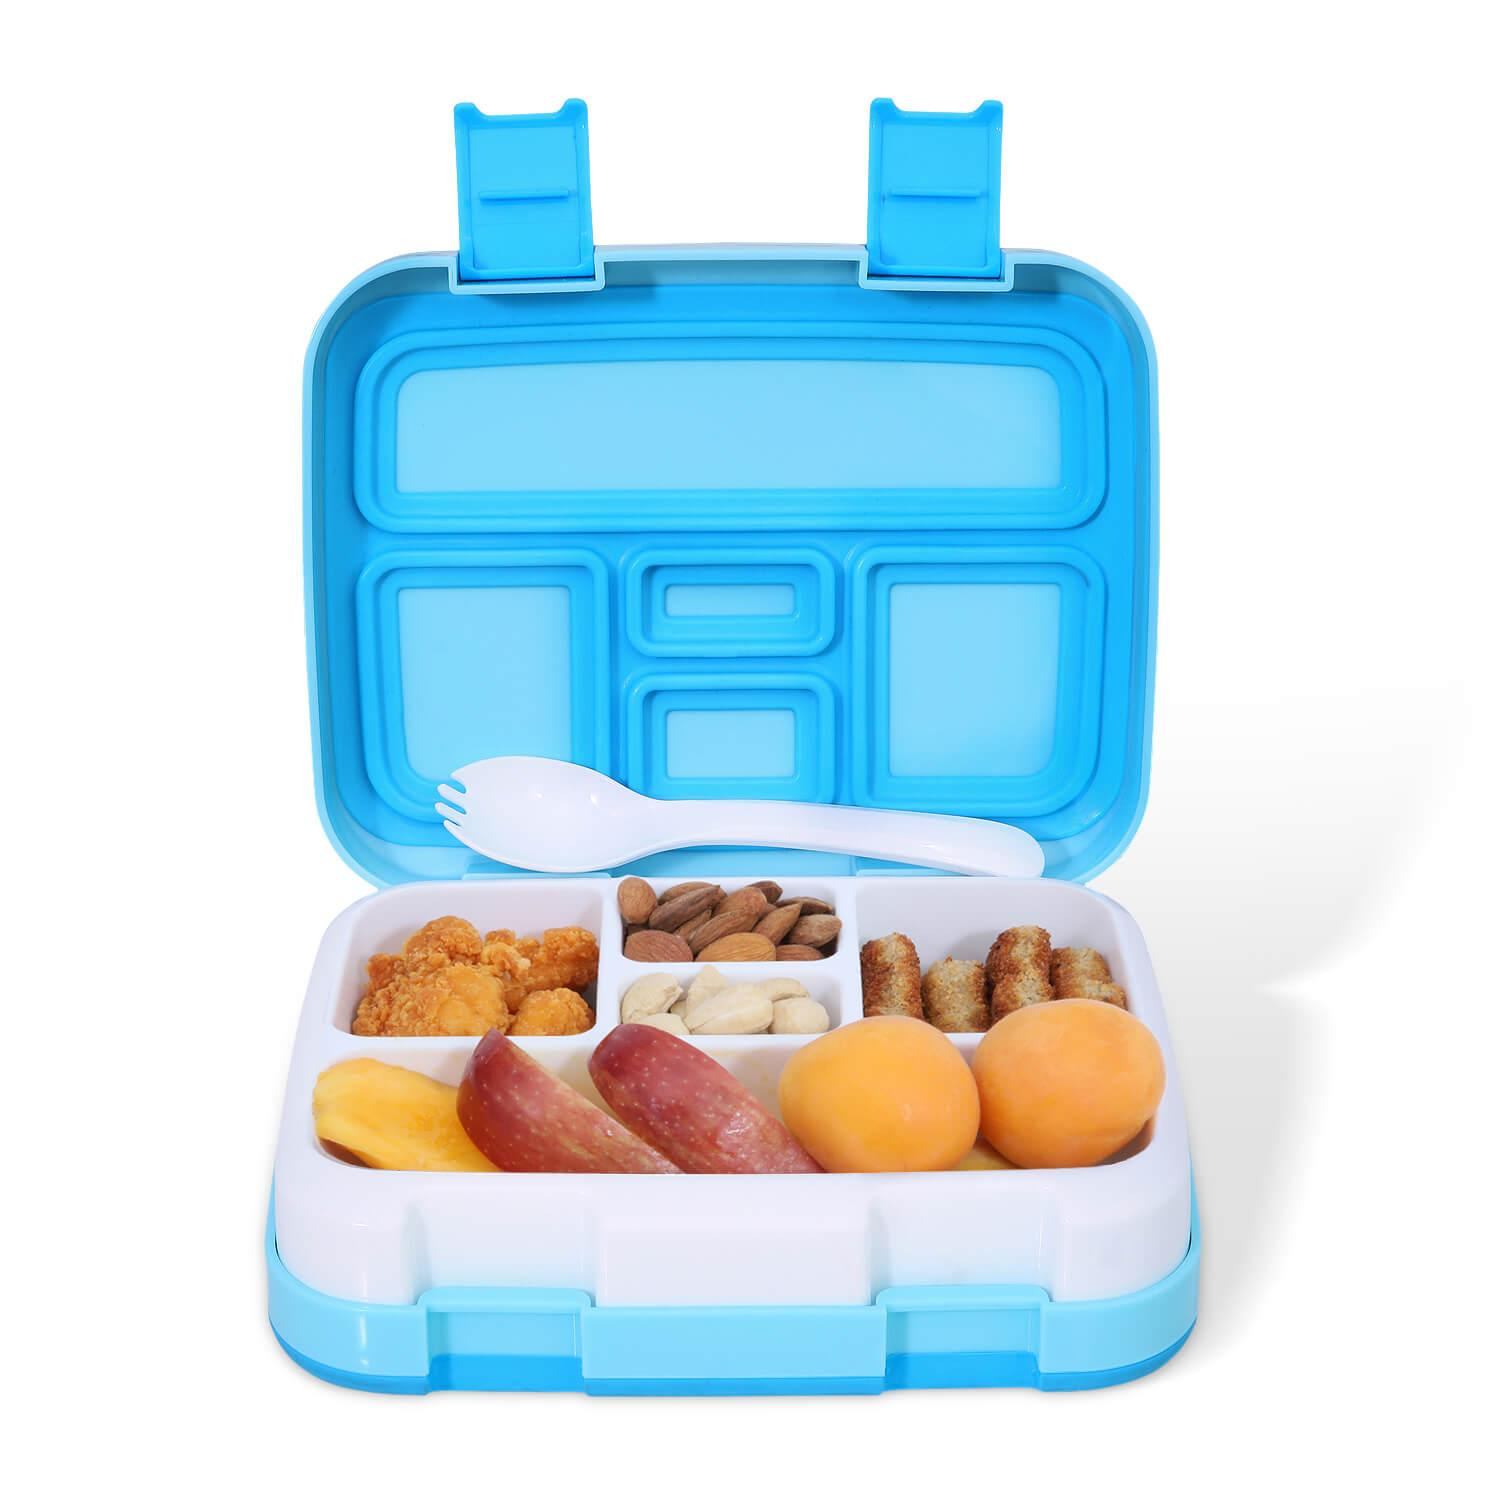 a1863d59da Lunch Bags & Boxes - Buy Lunch Bags & Boxes at Best Price in ...